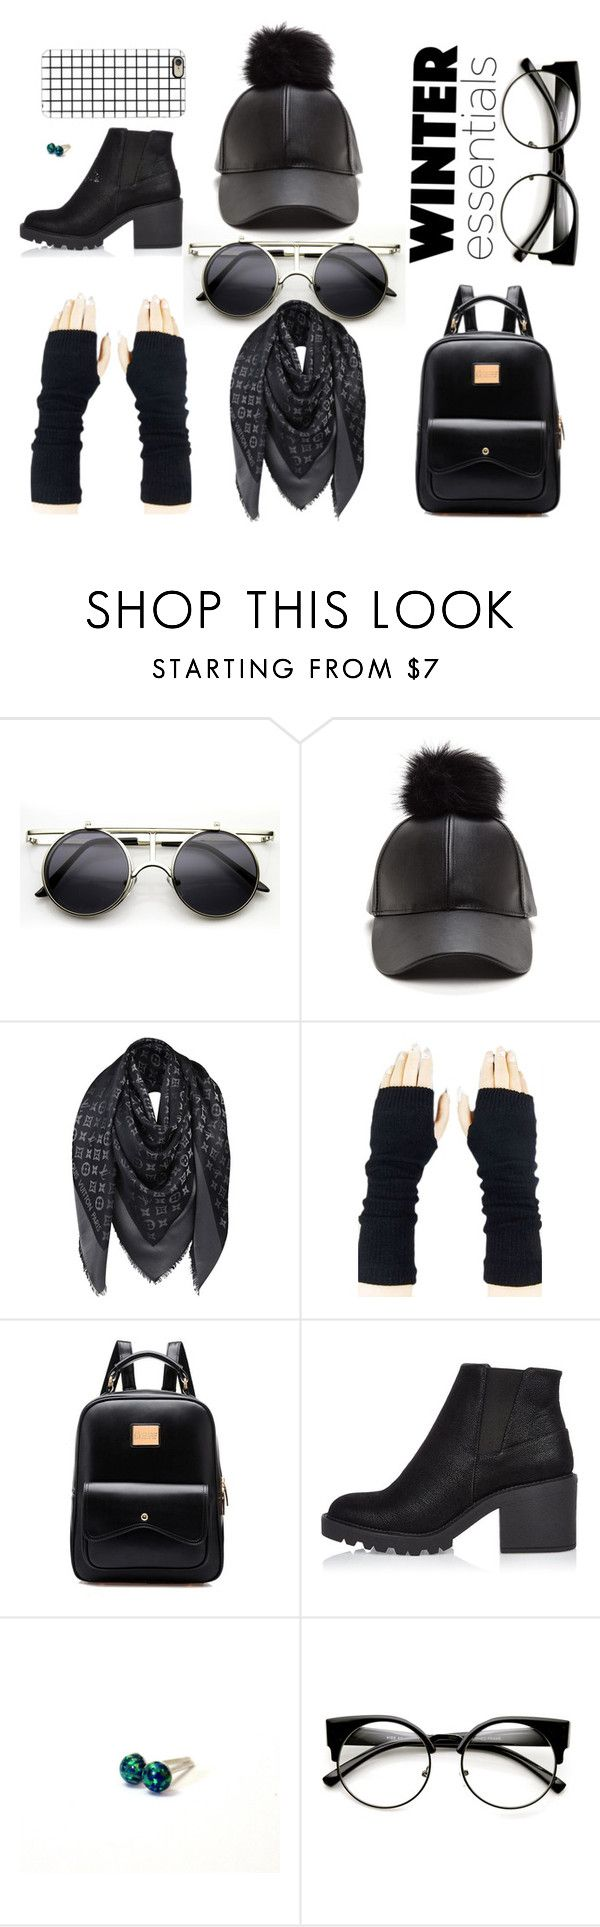 """Winter by Nikush"" by nikush-14263369628 ❤ liked on Polyvore featuring ZeroUV, Louis Vuitton, River Island, Casetify, Winter, topfashion, 2016 and Nikush"